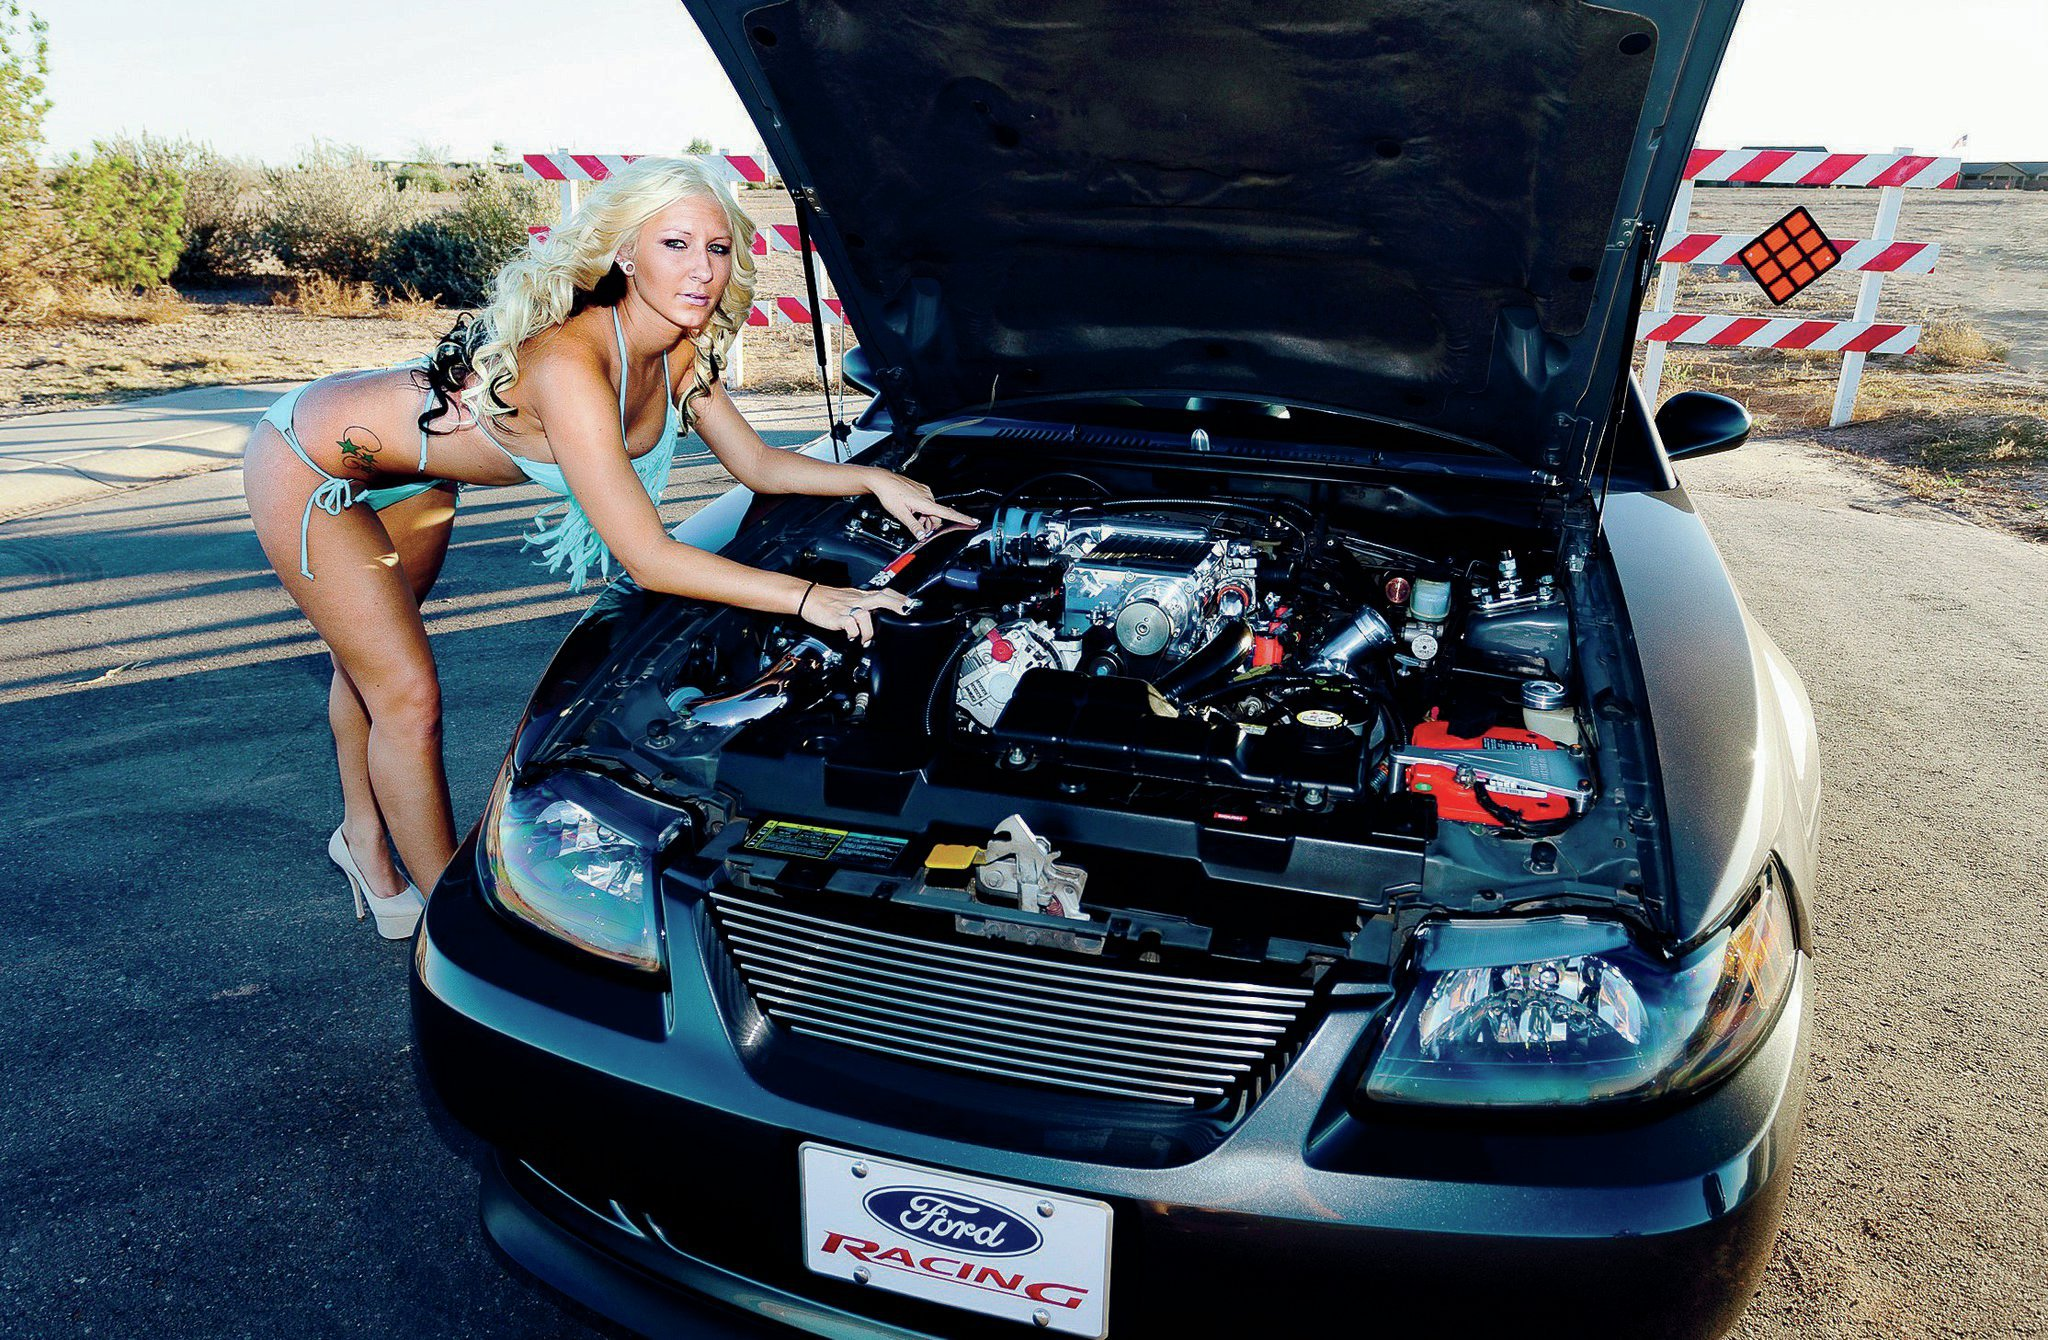 2003 Ford Mustang Engine View Emily Oney